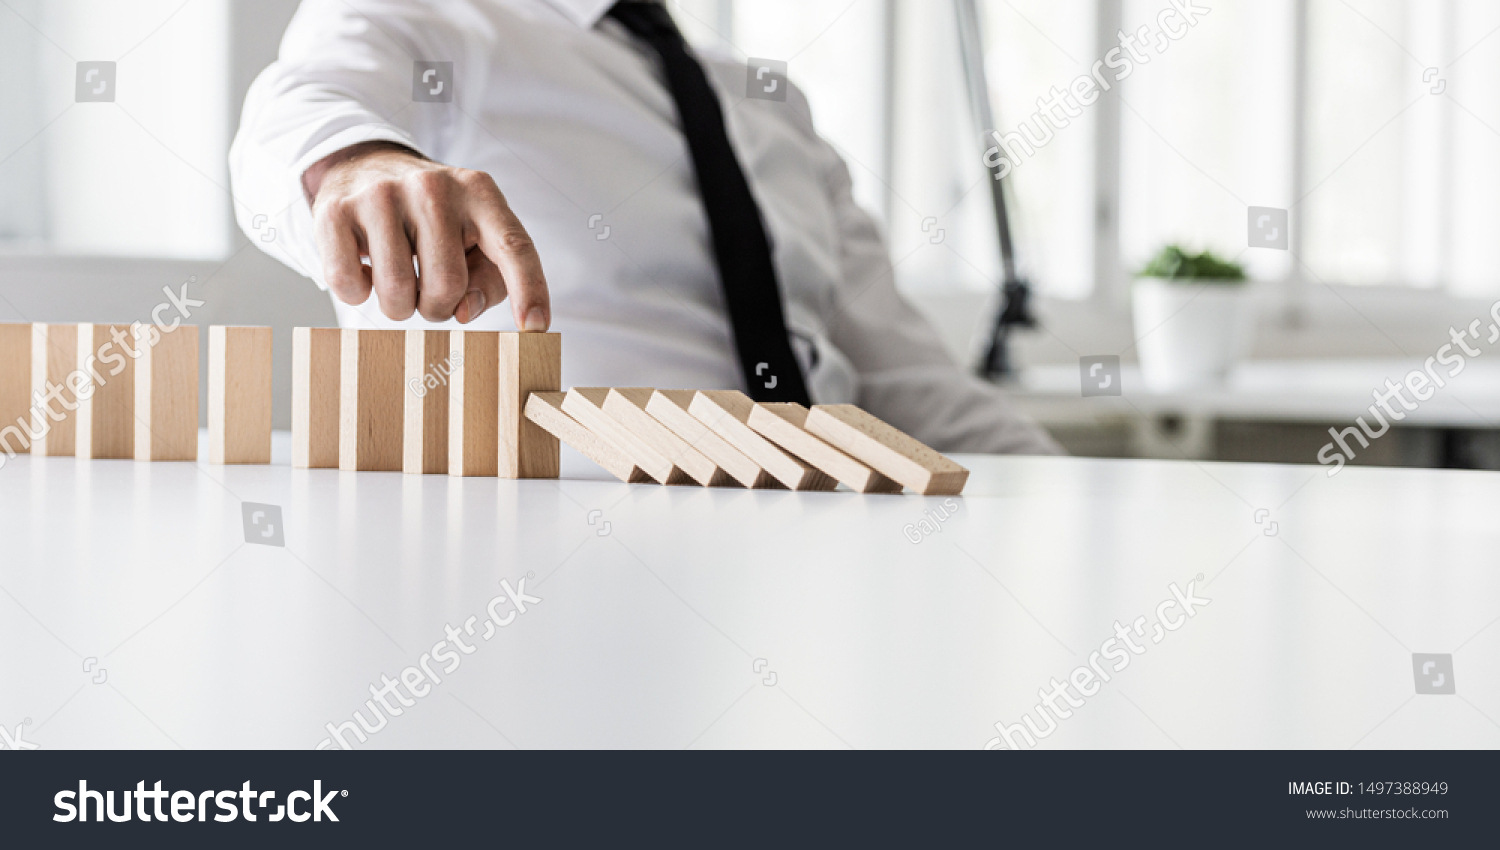 Business crisis manager preventing wooden dominos to collapse in a conceptual image. #1497388949